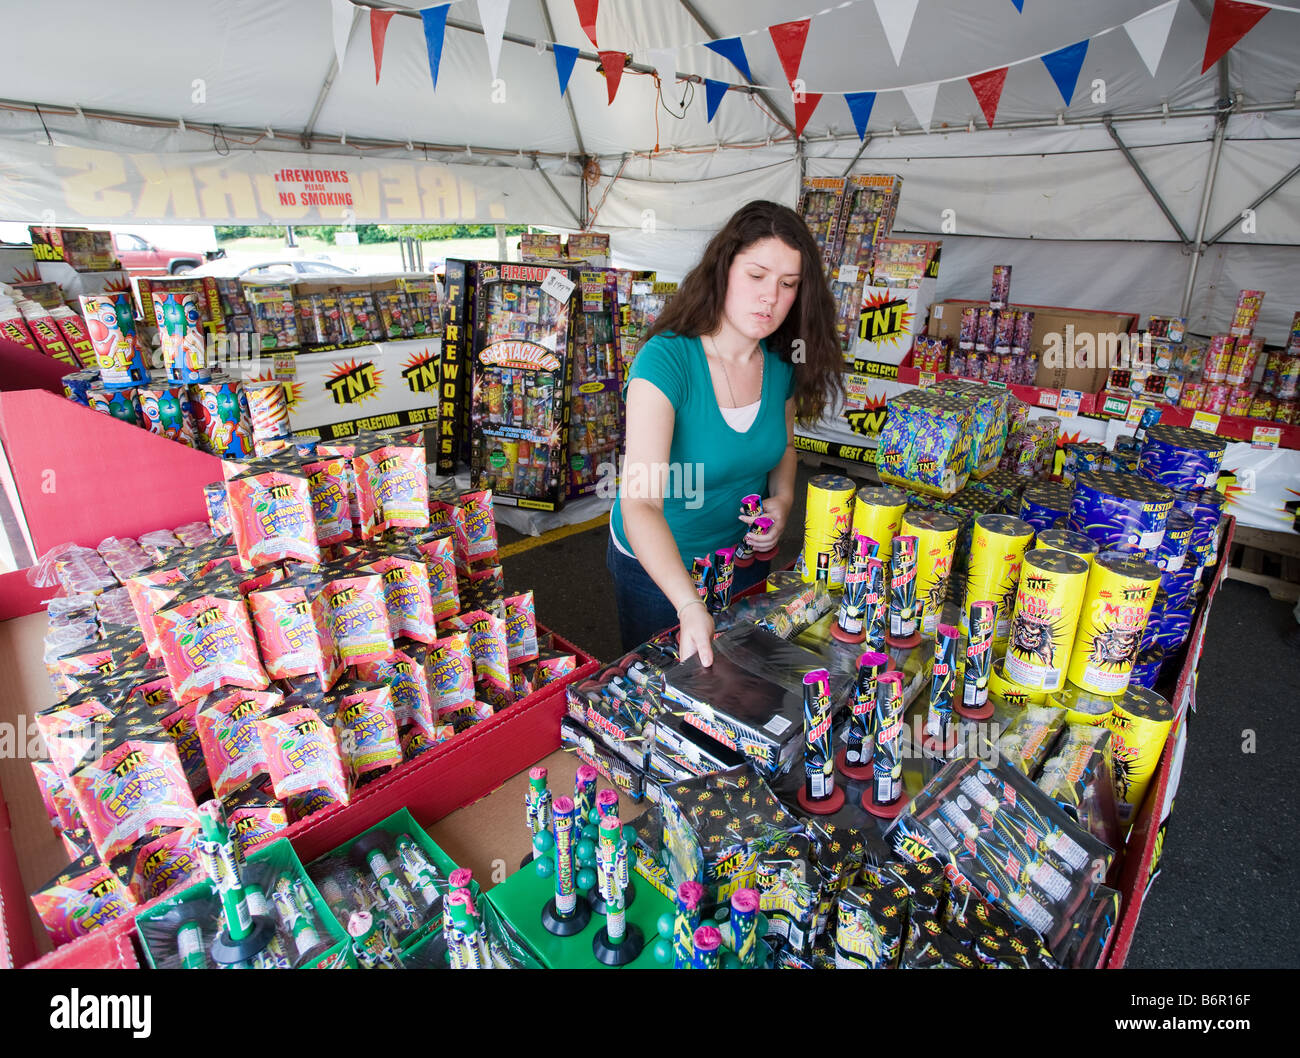 A young woman sells legal fireworks in a roadside stand tent in Milford Connecticut USA  sc 1 st  Alamy & A young woman sells legal fireworks in a roadside stand tent in ...